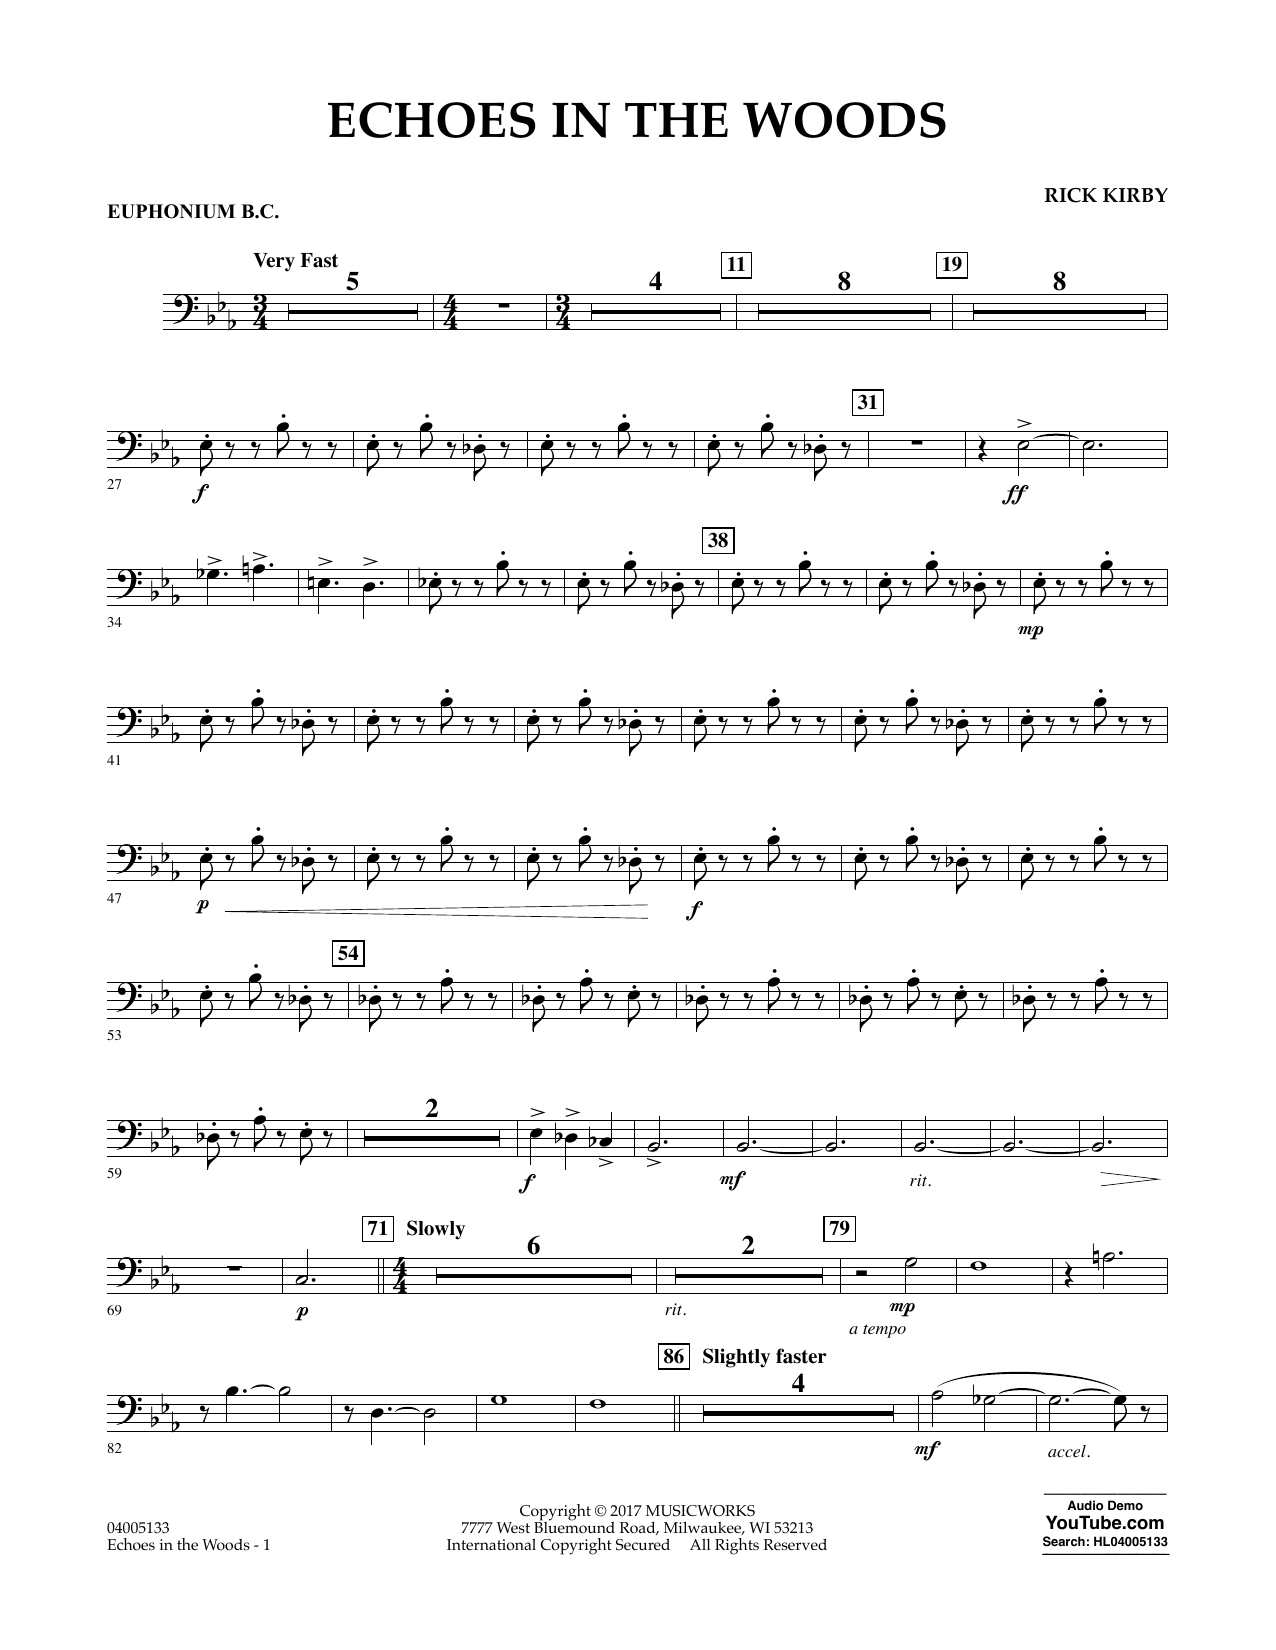 Echoes in the Woods - Euphonium in Bass Clef Sheet Music